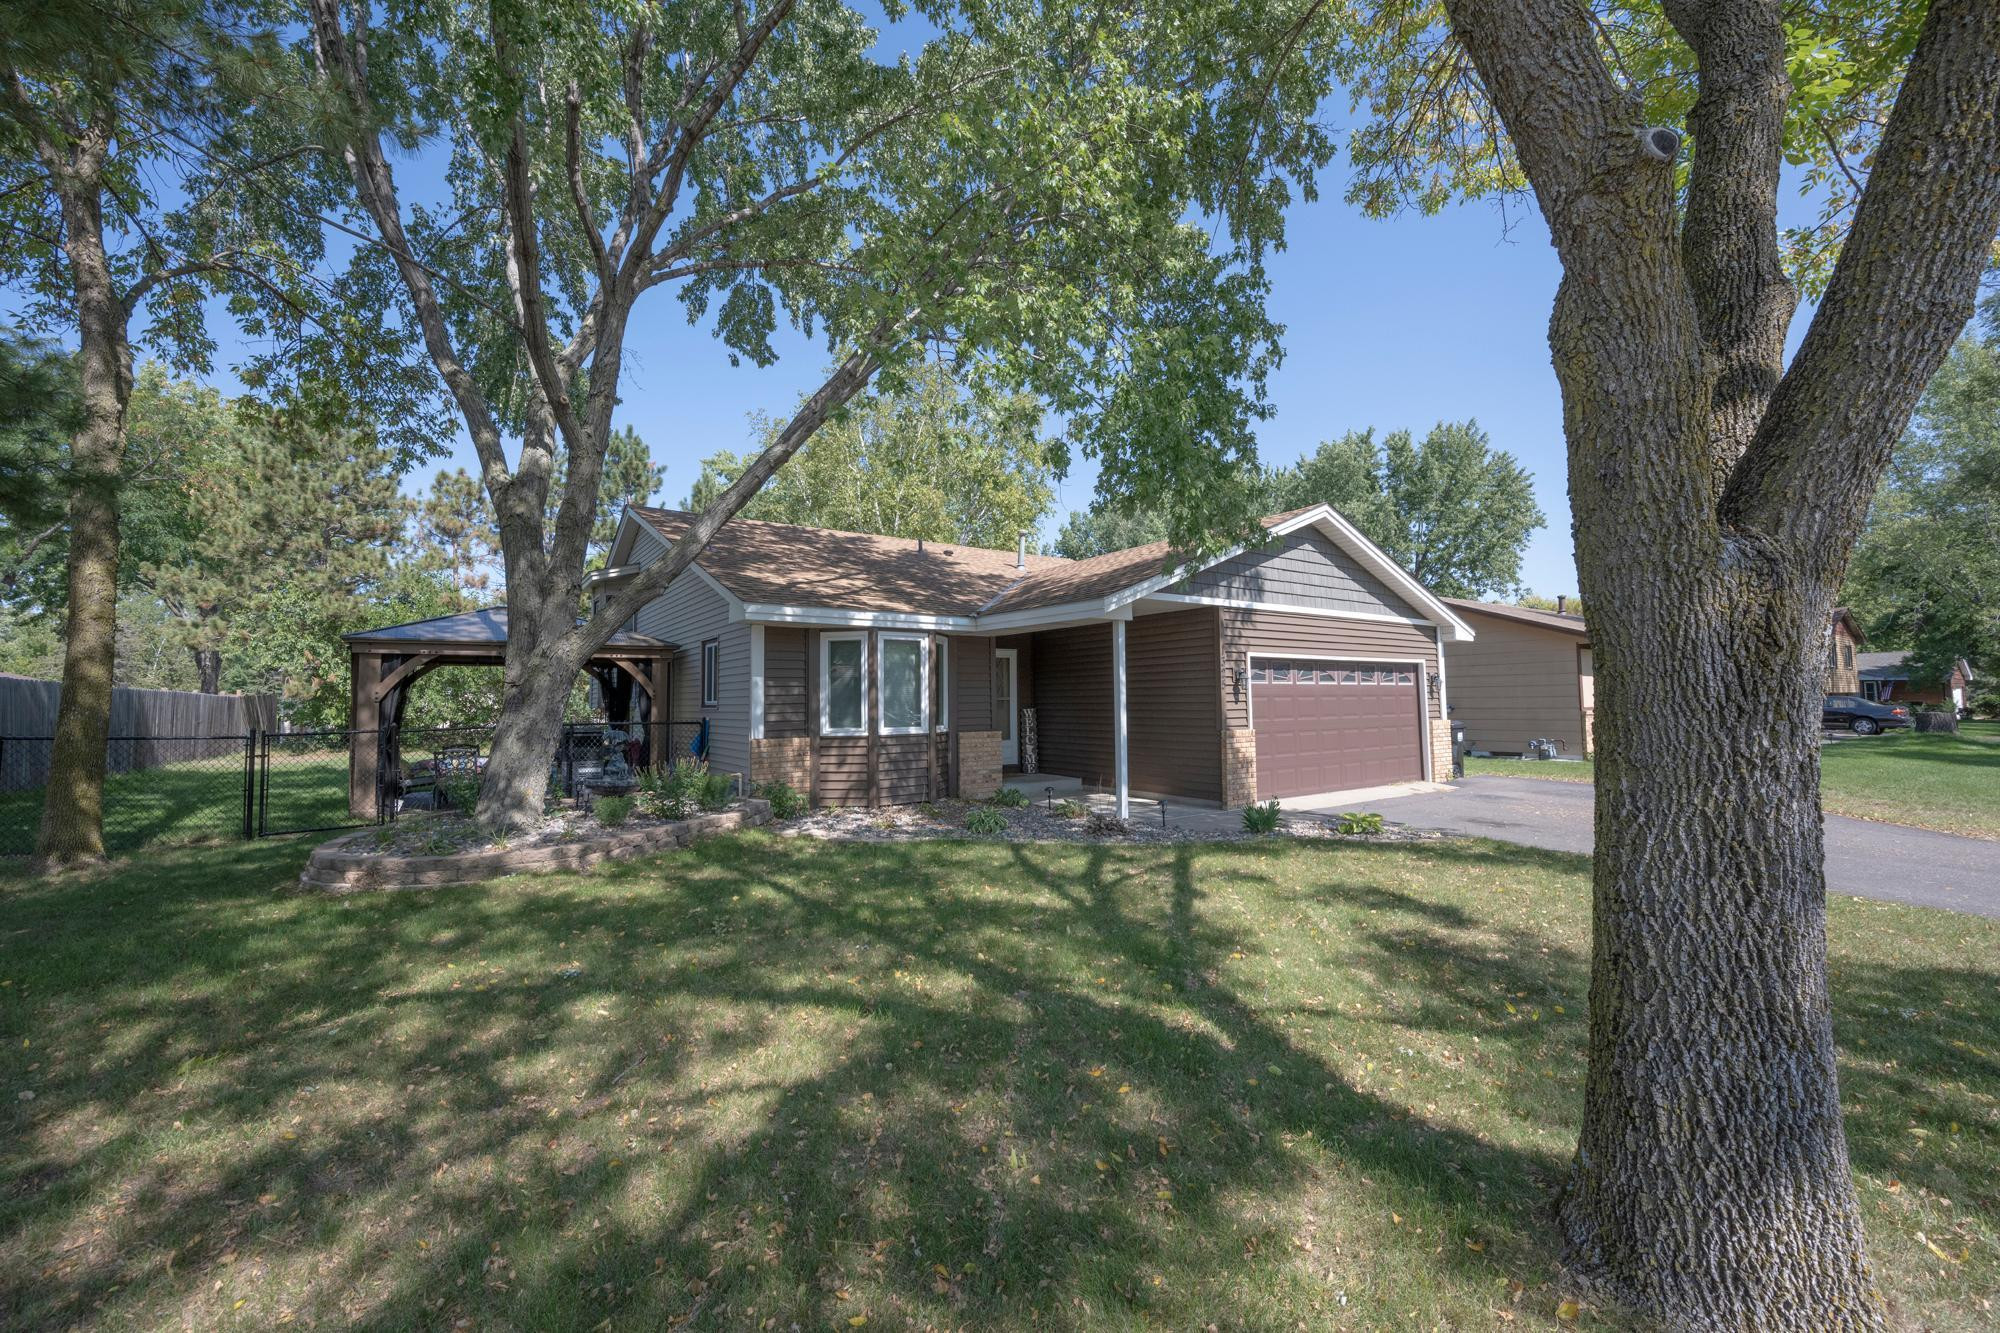 Welcome home to this lovely 3 level home with 3 BR's, 2 BA, and 2 car attached garage.